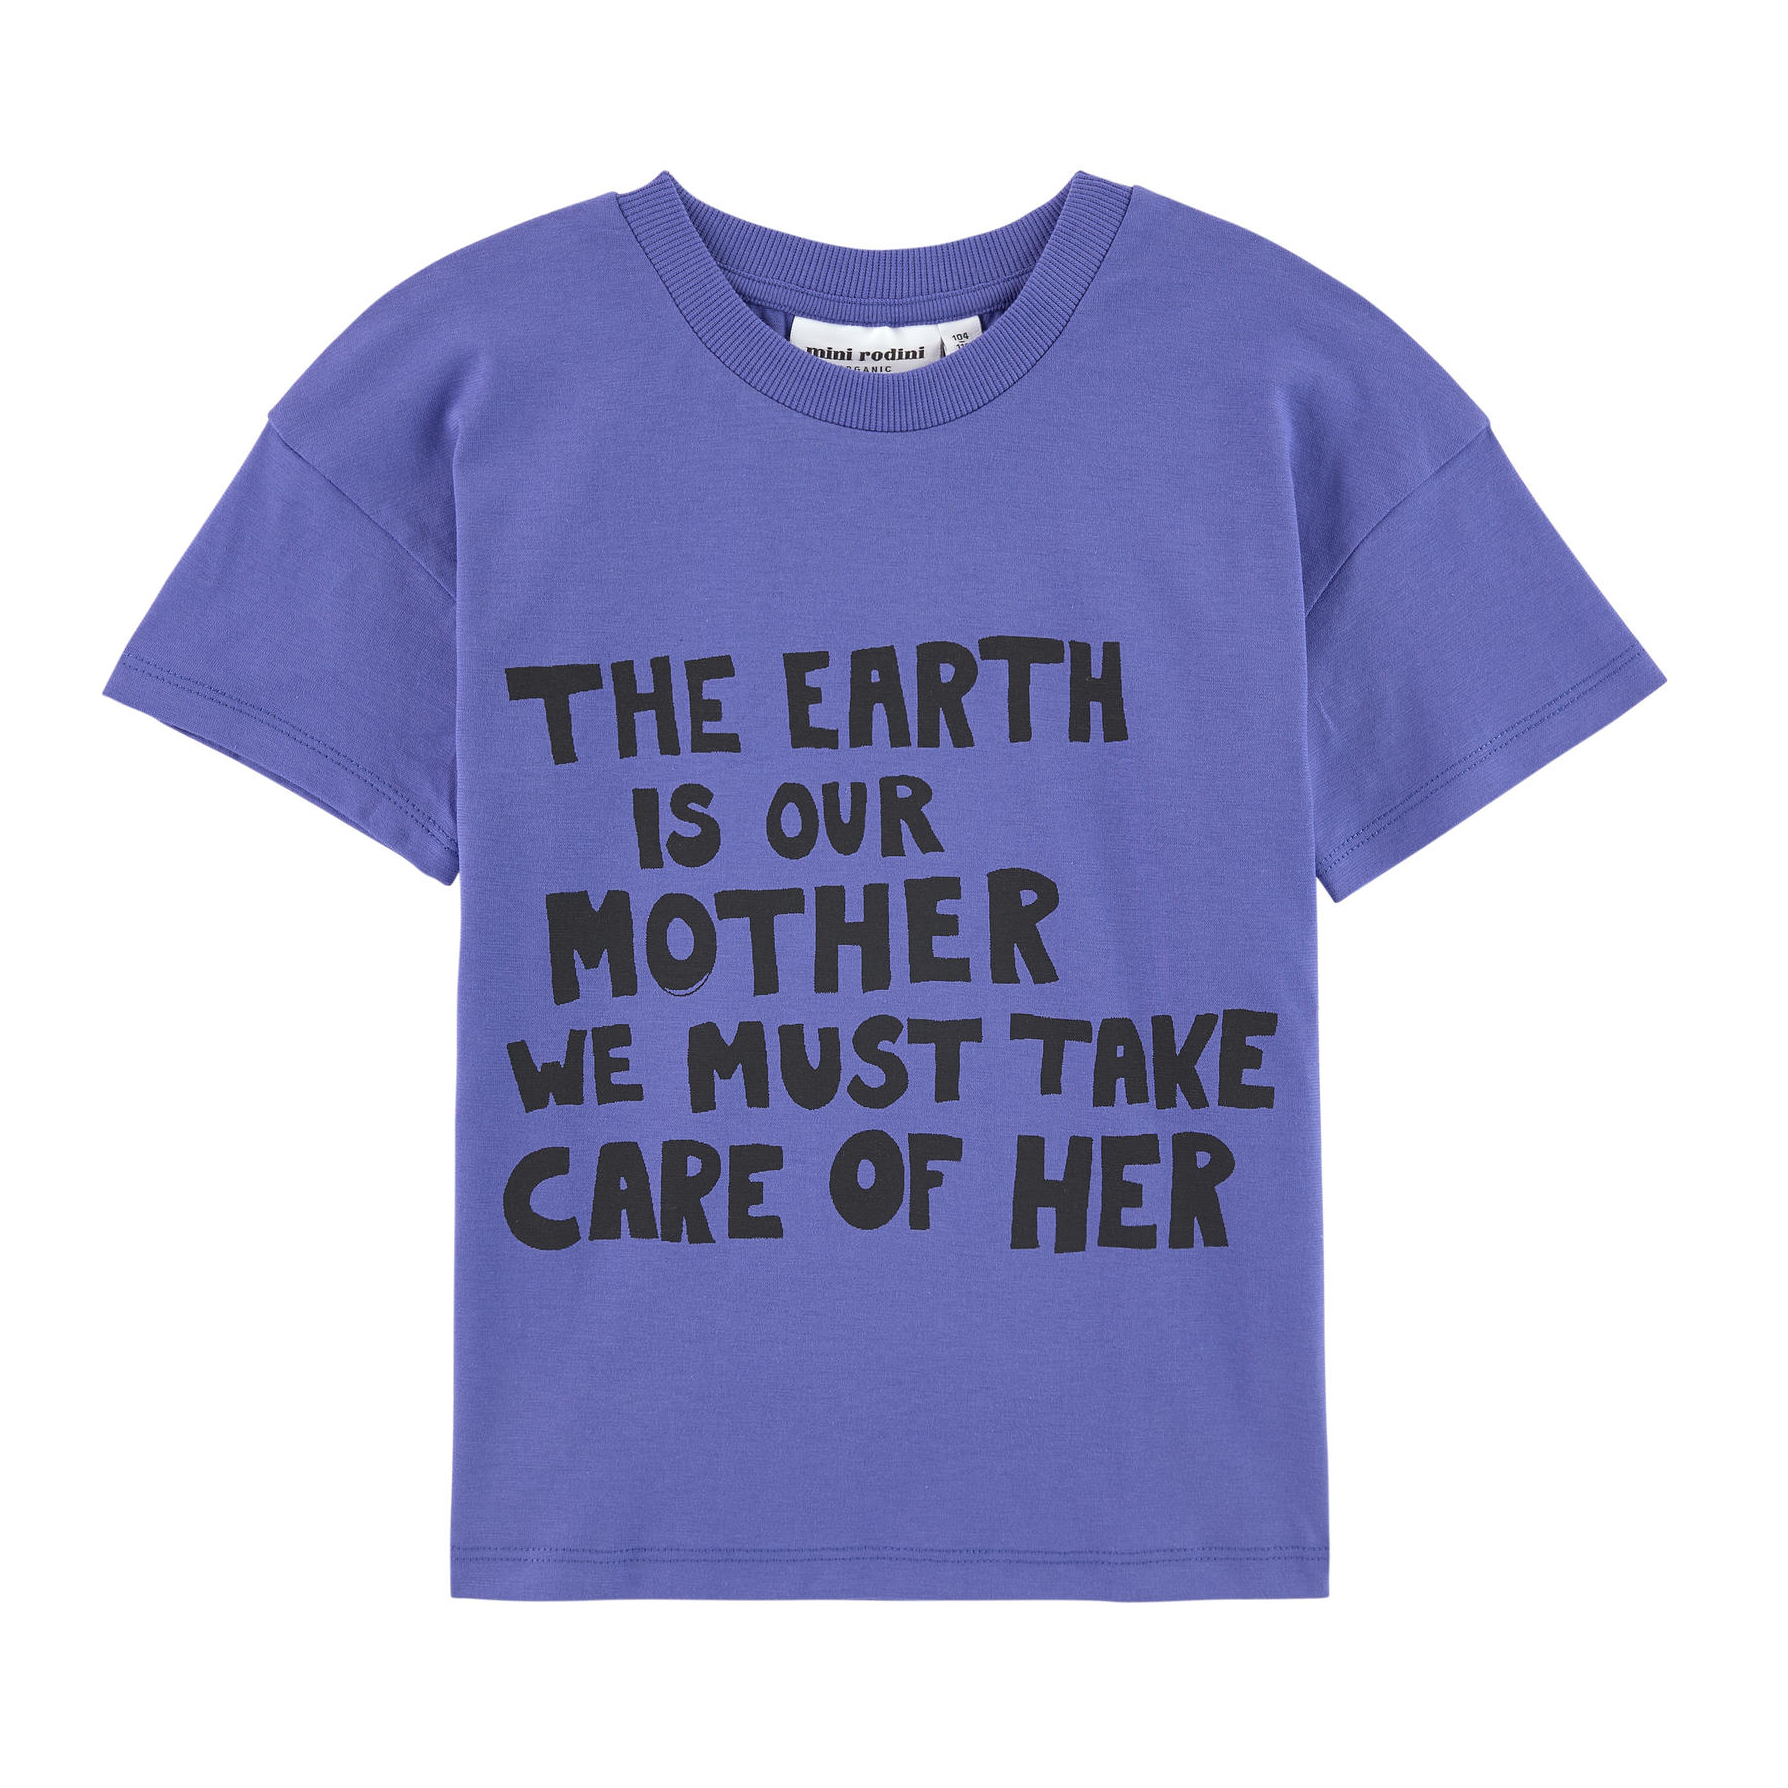 mini-rodini-the-earth-is-our-mother-we-must-take-care-of-her-t-shirt-melijoe